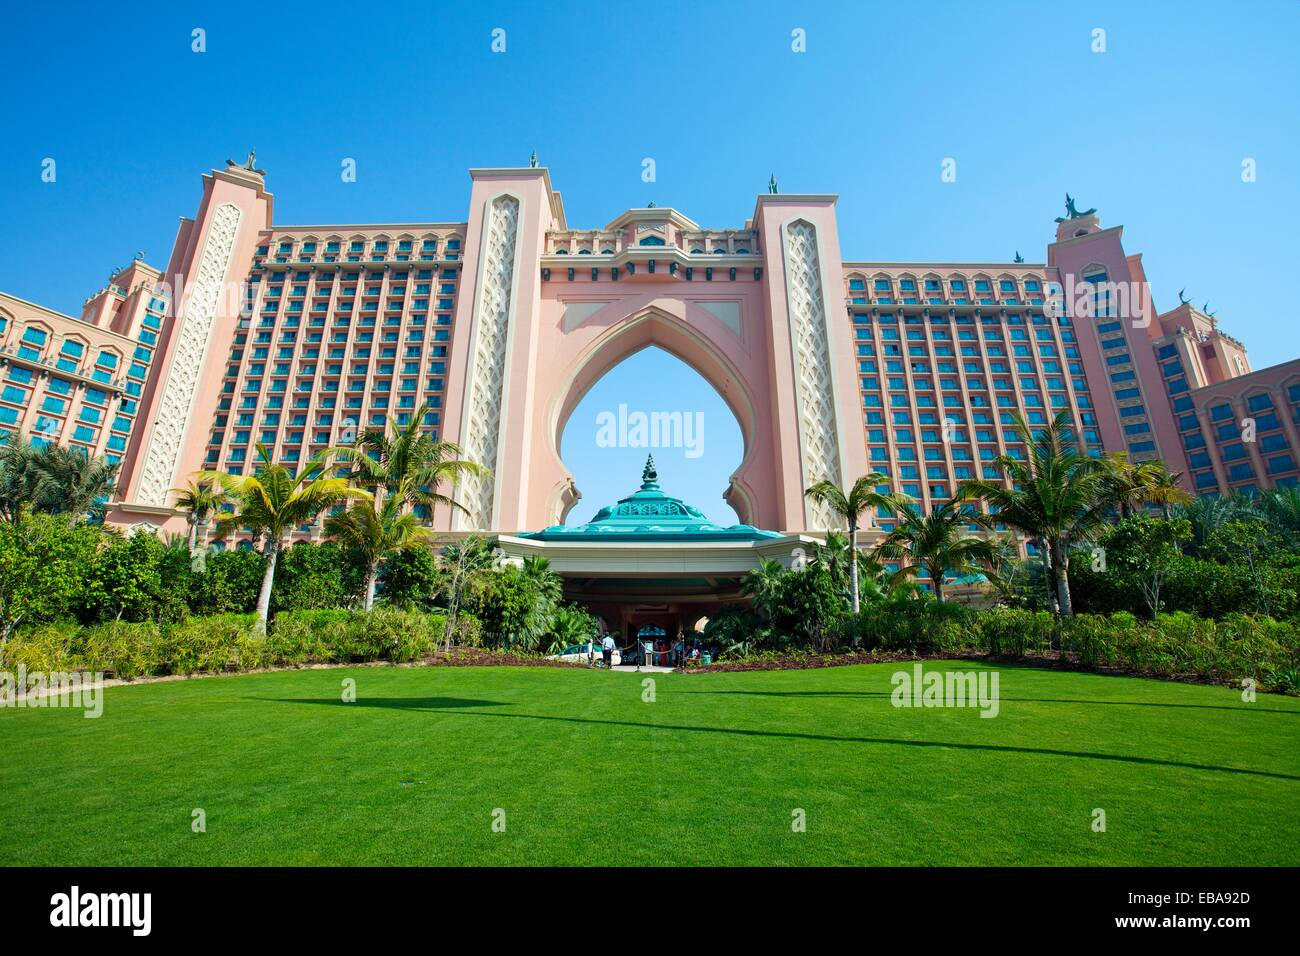 The Atlantis hotel, Palm Jumeirah, Dubai City, Dubai, United Arab Emirates, Middle East. - Stock Image